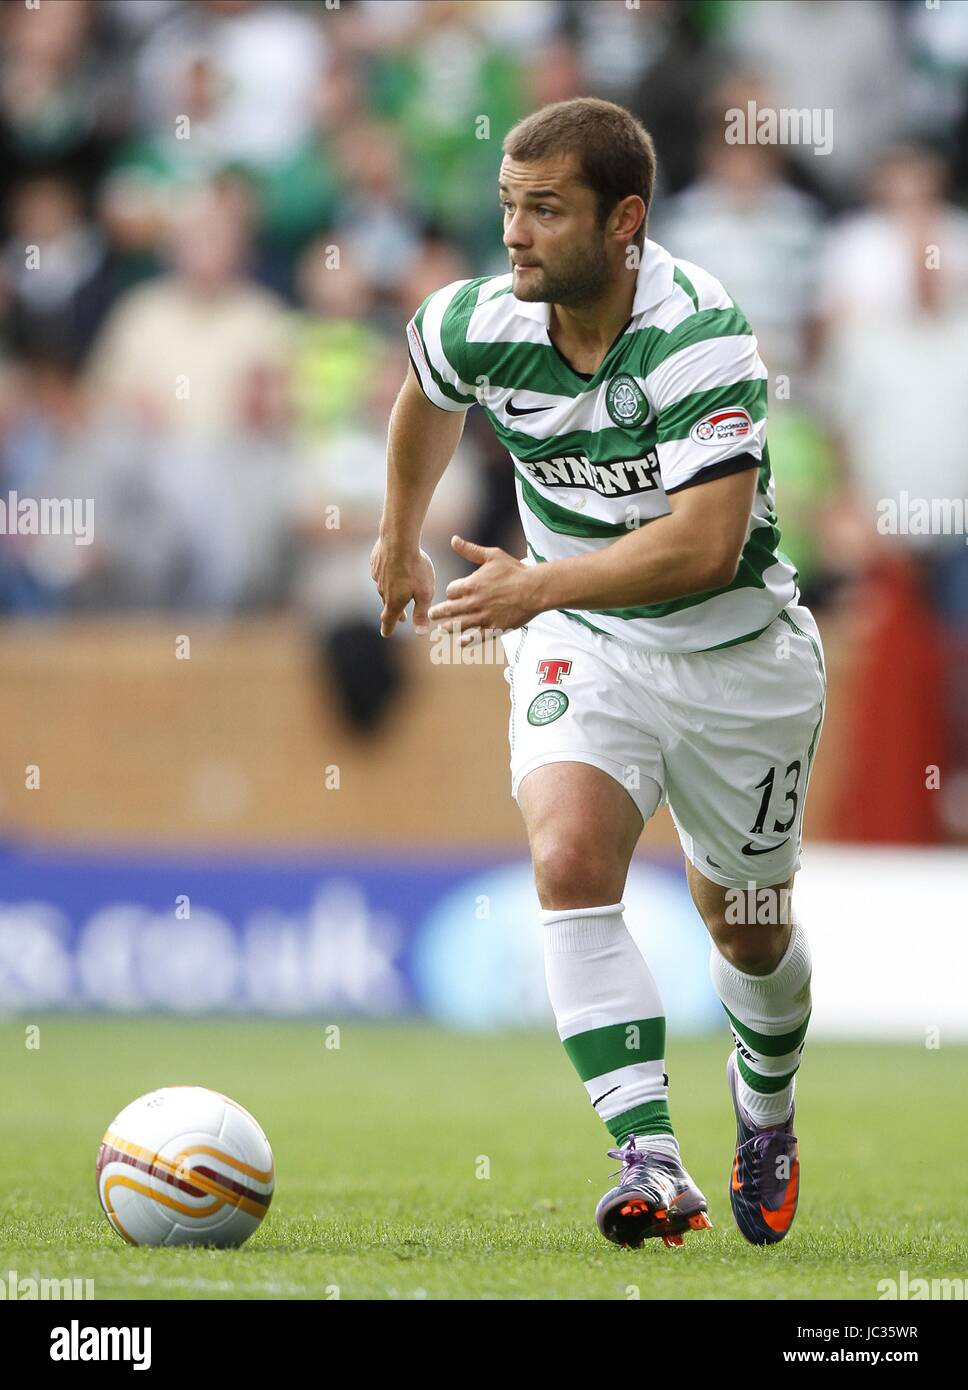 SHAUN MALONEY GLASGOW CELTIC FC GLASGOW CELTIC FC FIR PARK MOTHERWELL SCOTLAND 29 August 2010 Stock Photo